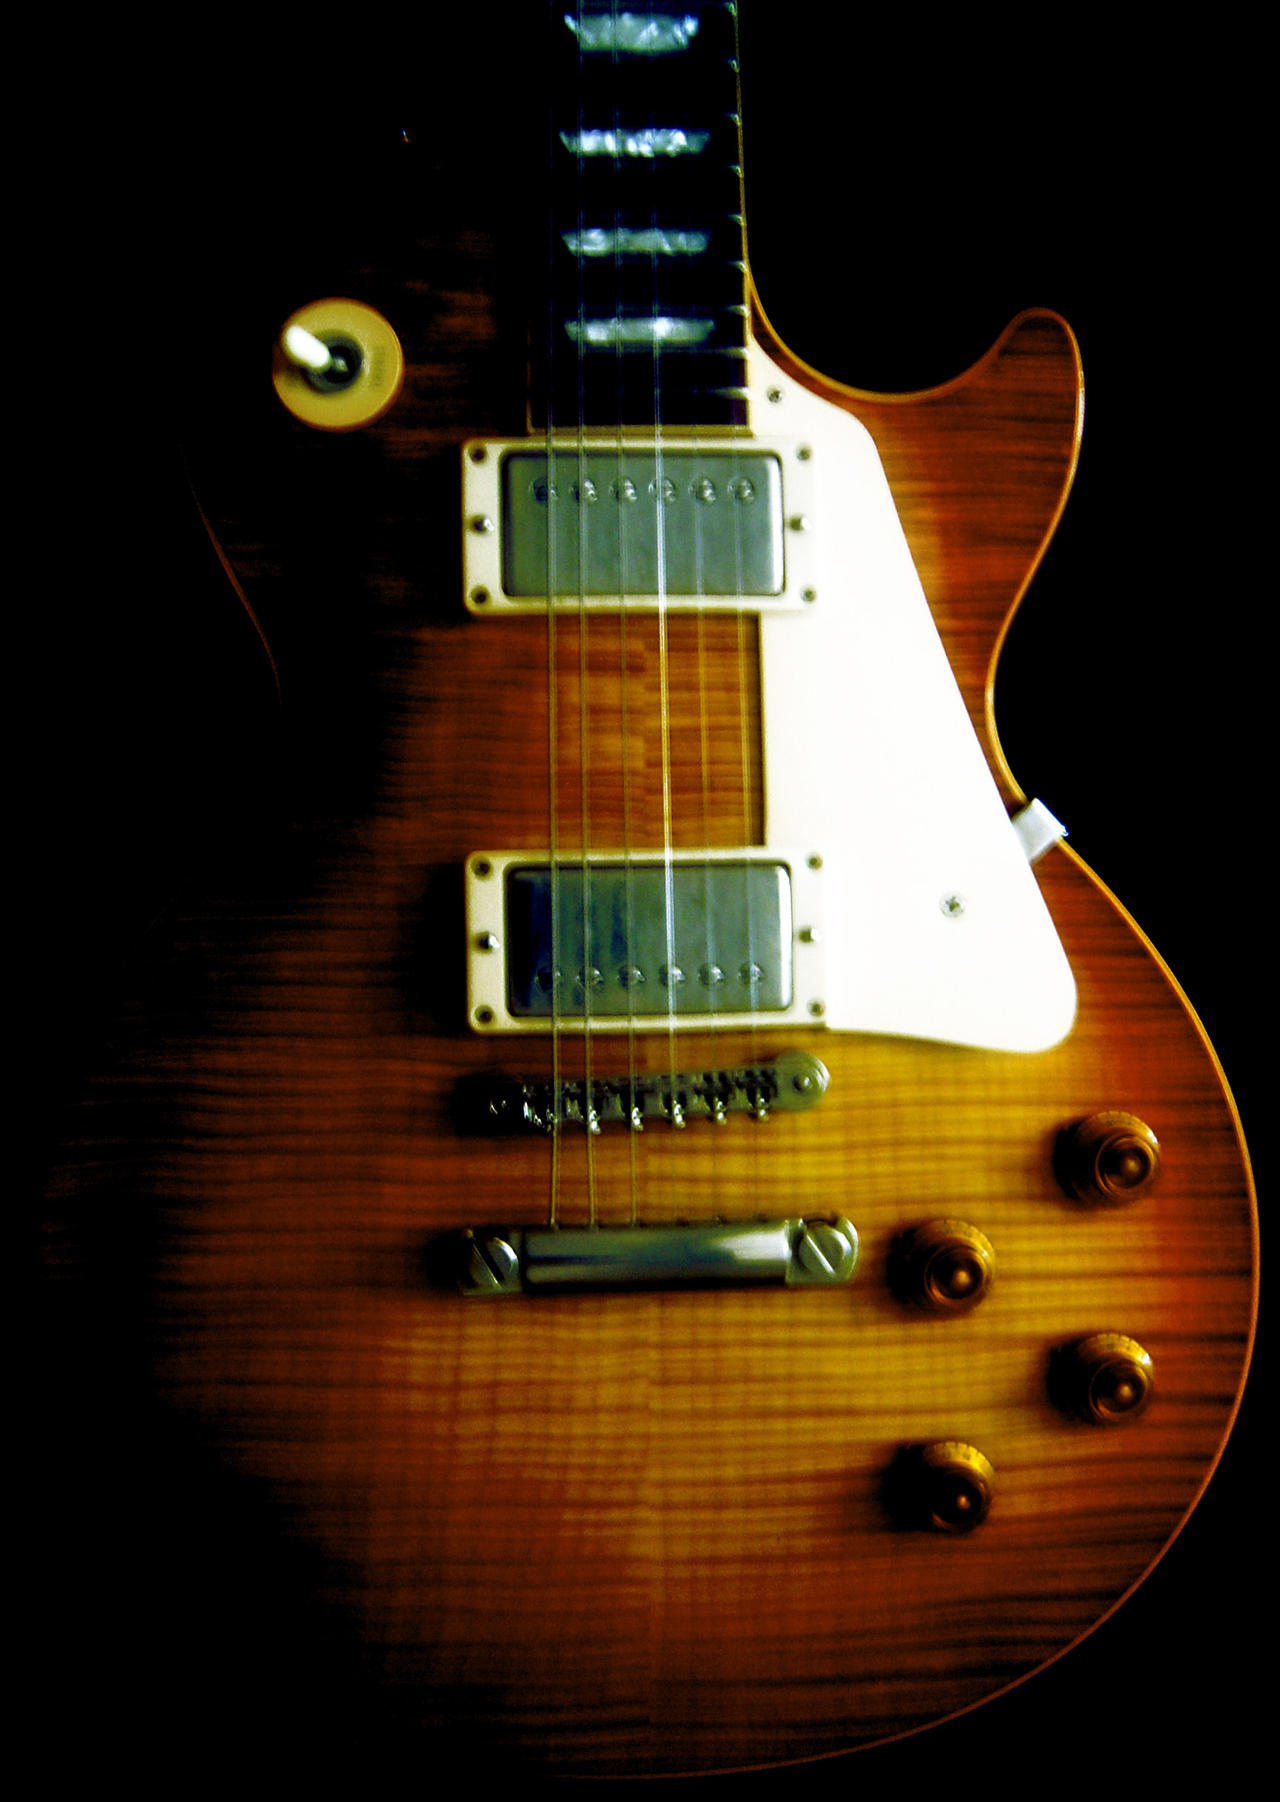 guitar wallpaper les paul - photo #15